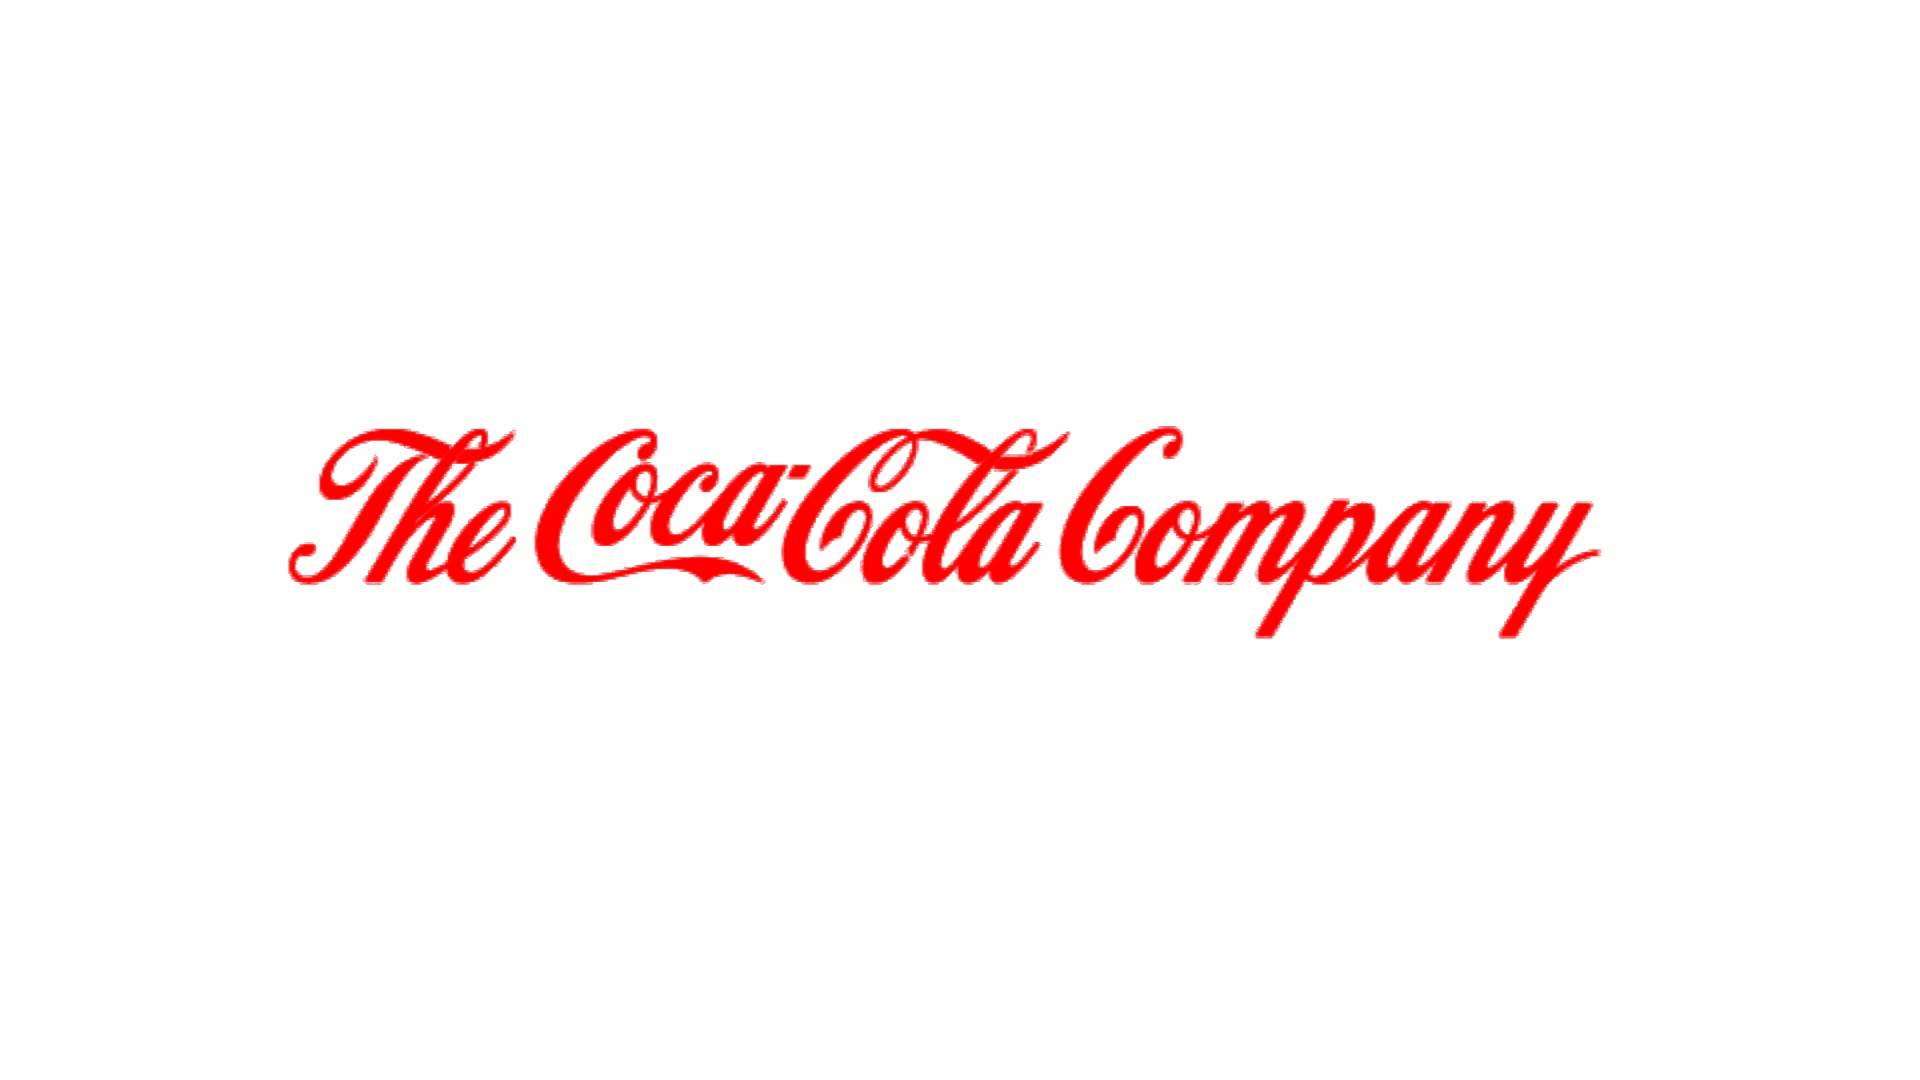 30. The Coca-Cola Company